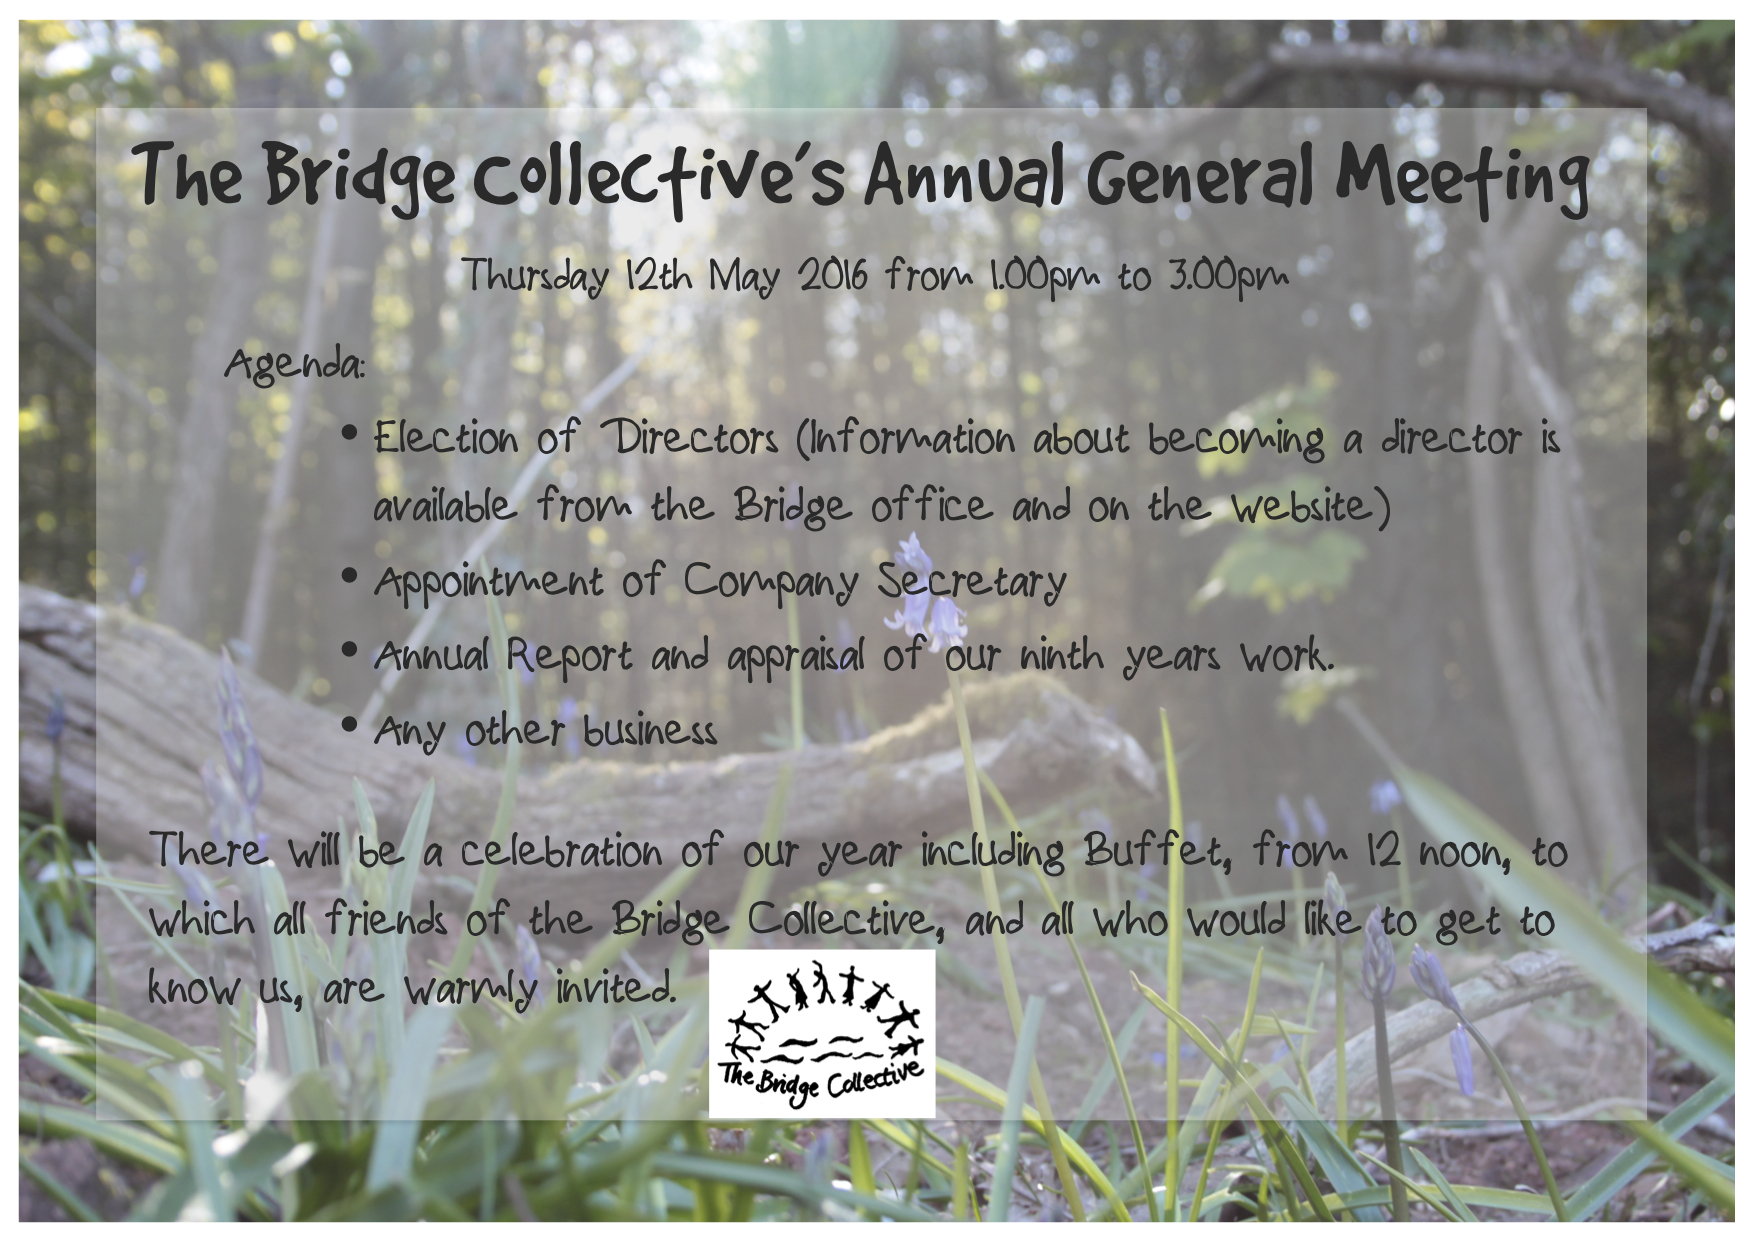 The Bridge Collective's Annual General Meeting